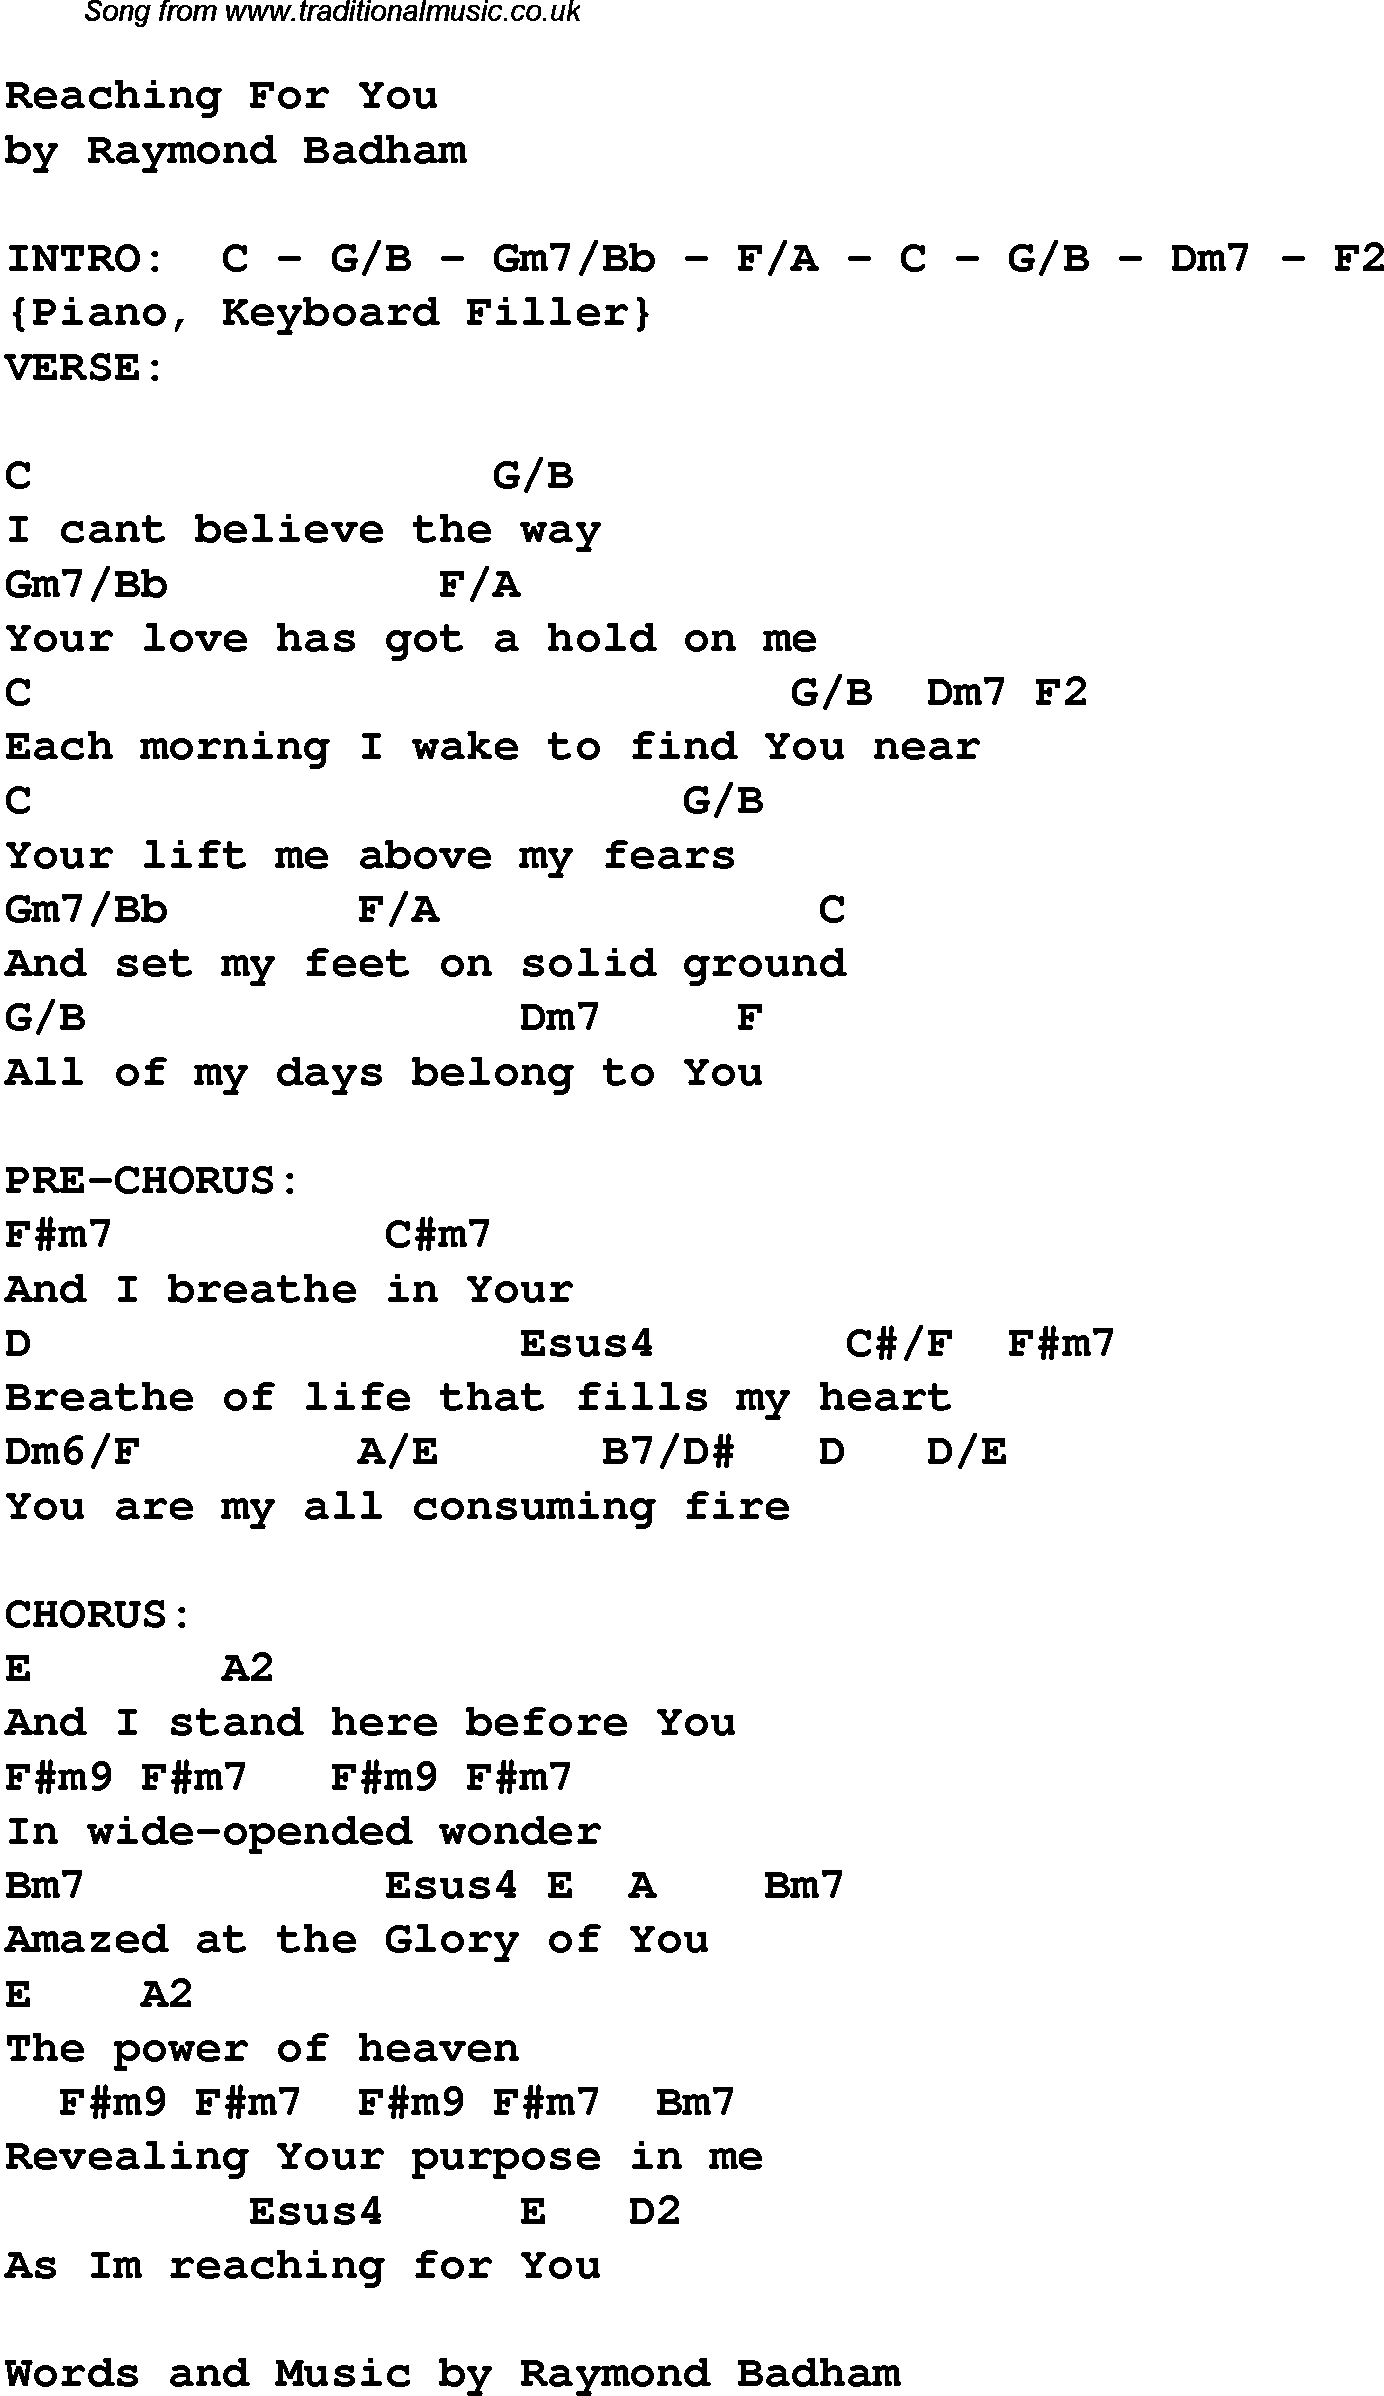 You Belong With Me Chords You Belong With Me Lyrics And Chords